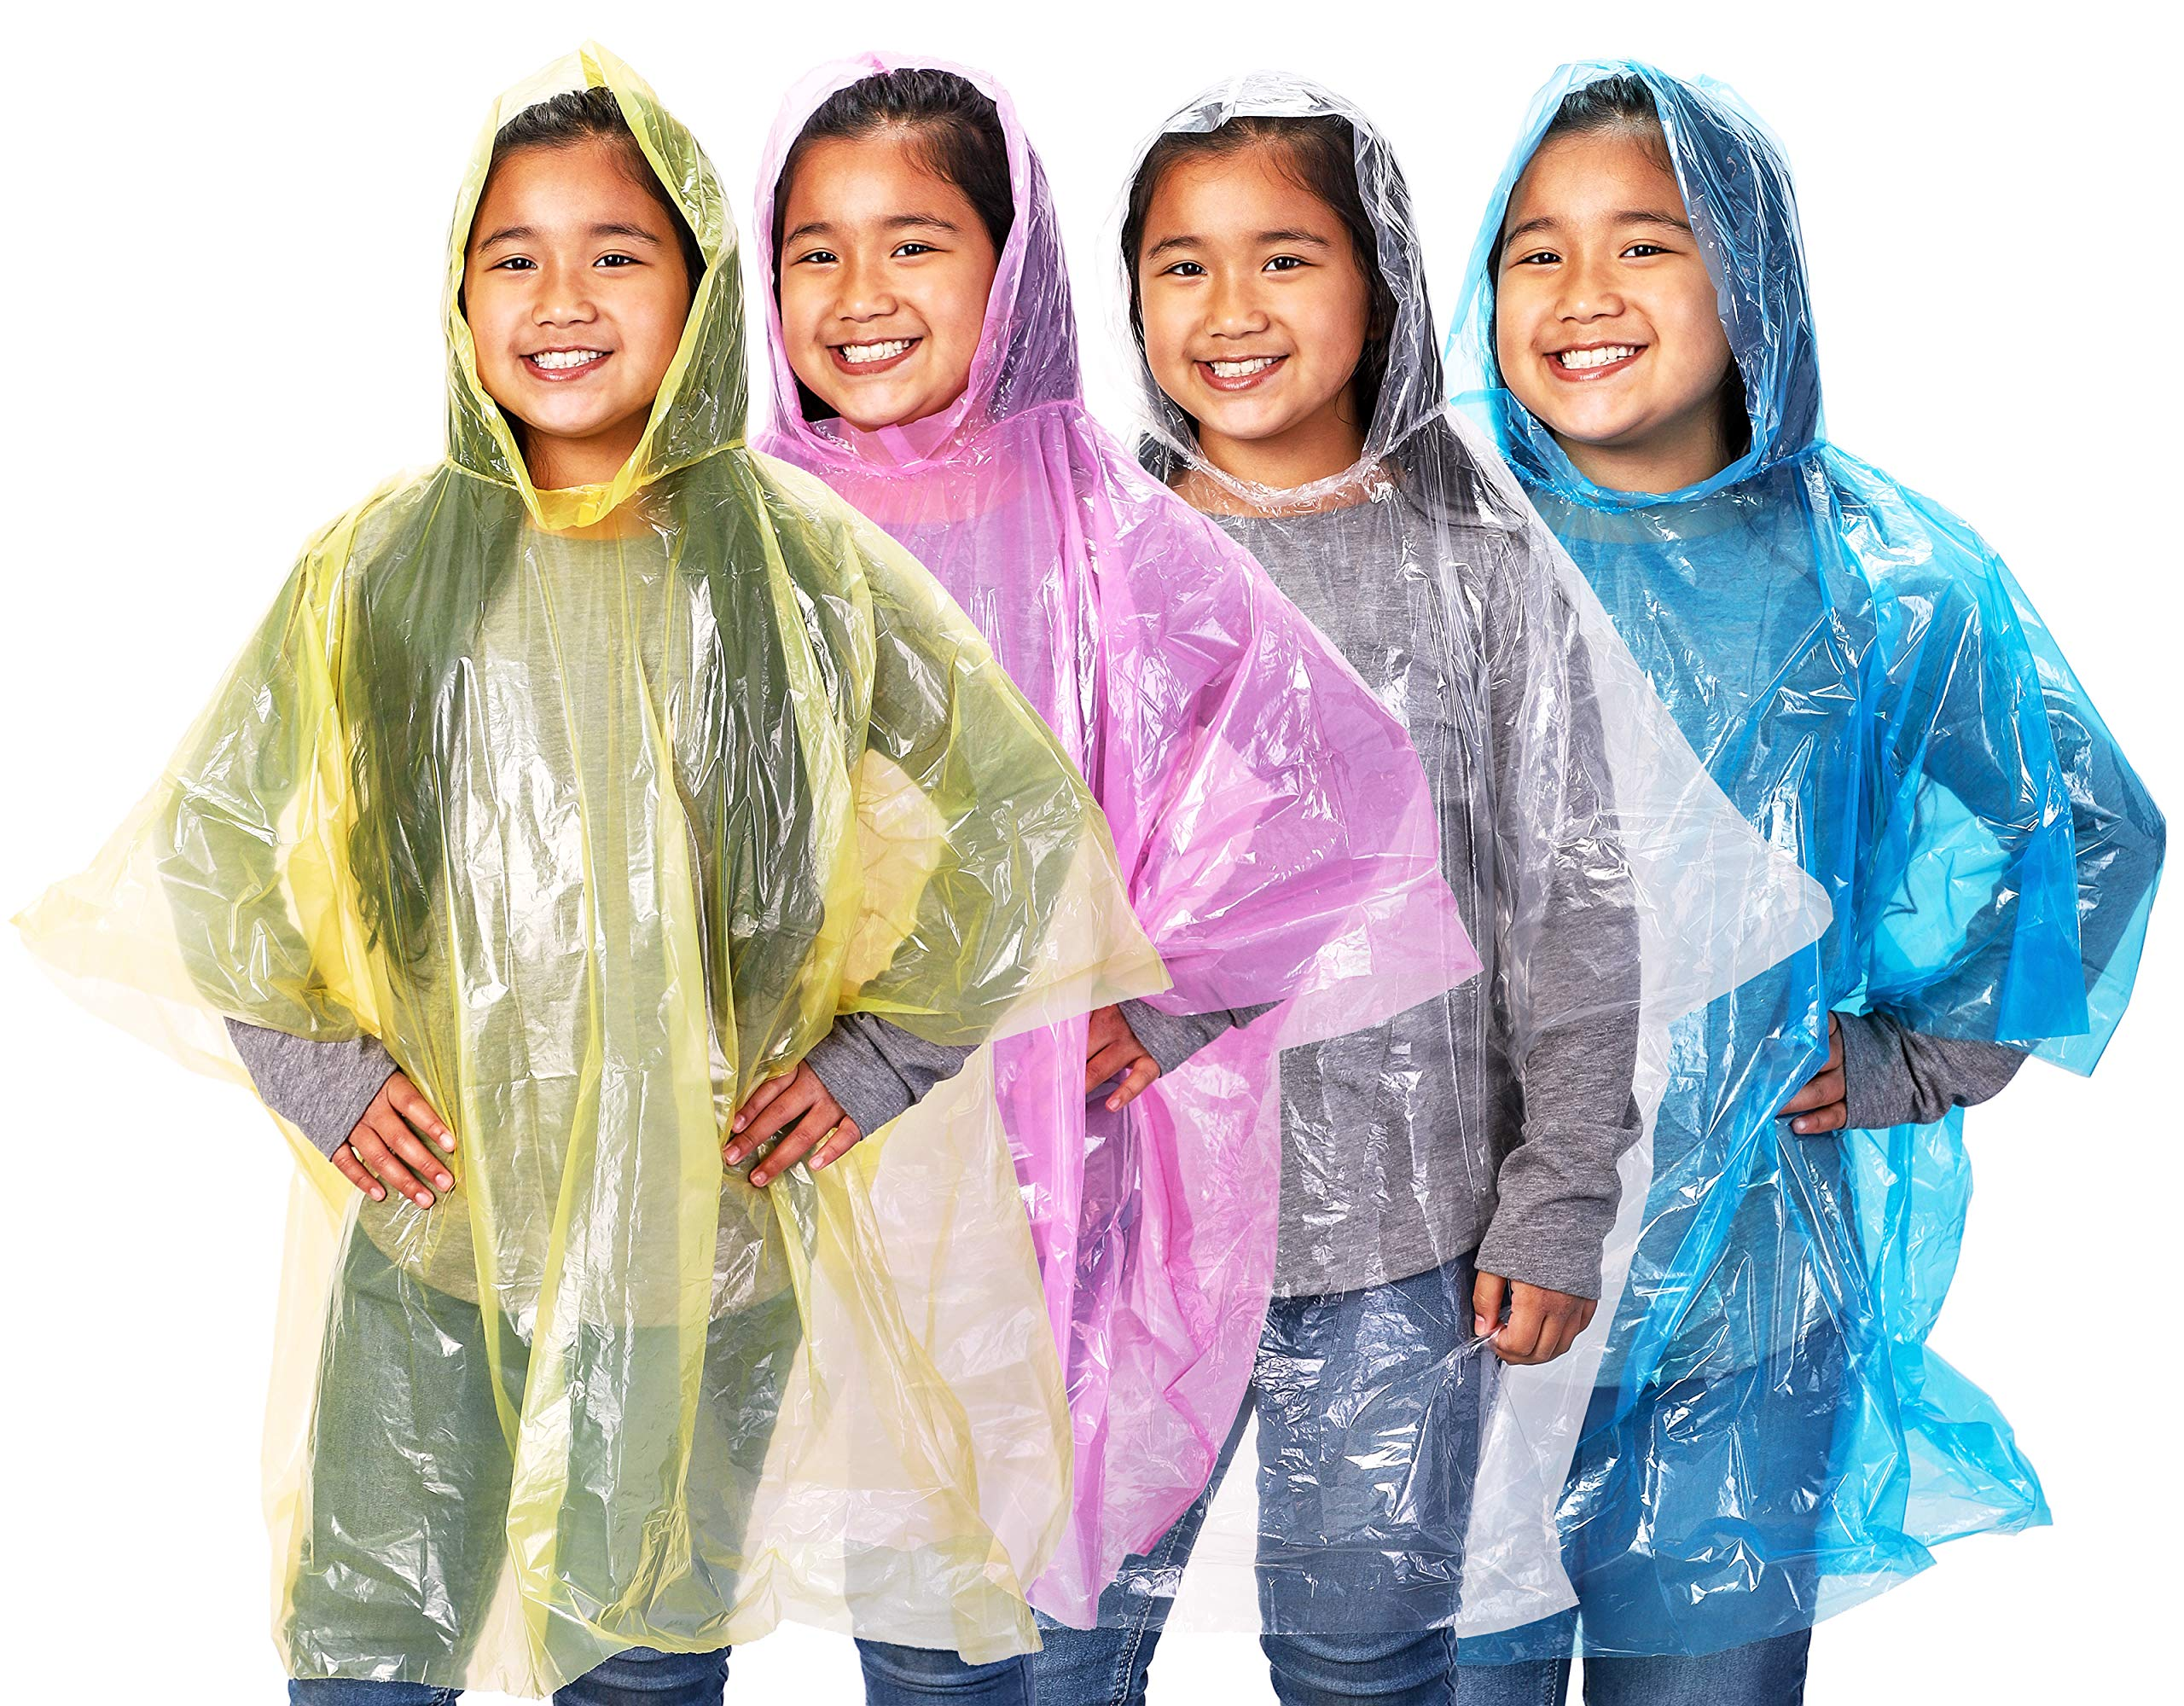 Juvale 48-Pack Kids Disposable Emergency Rain Ponchos with Hood, 4 Assorted Colors by Juvale